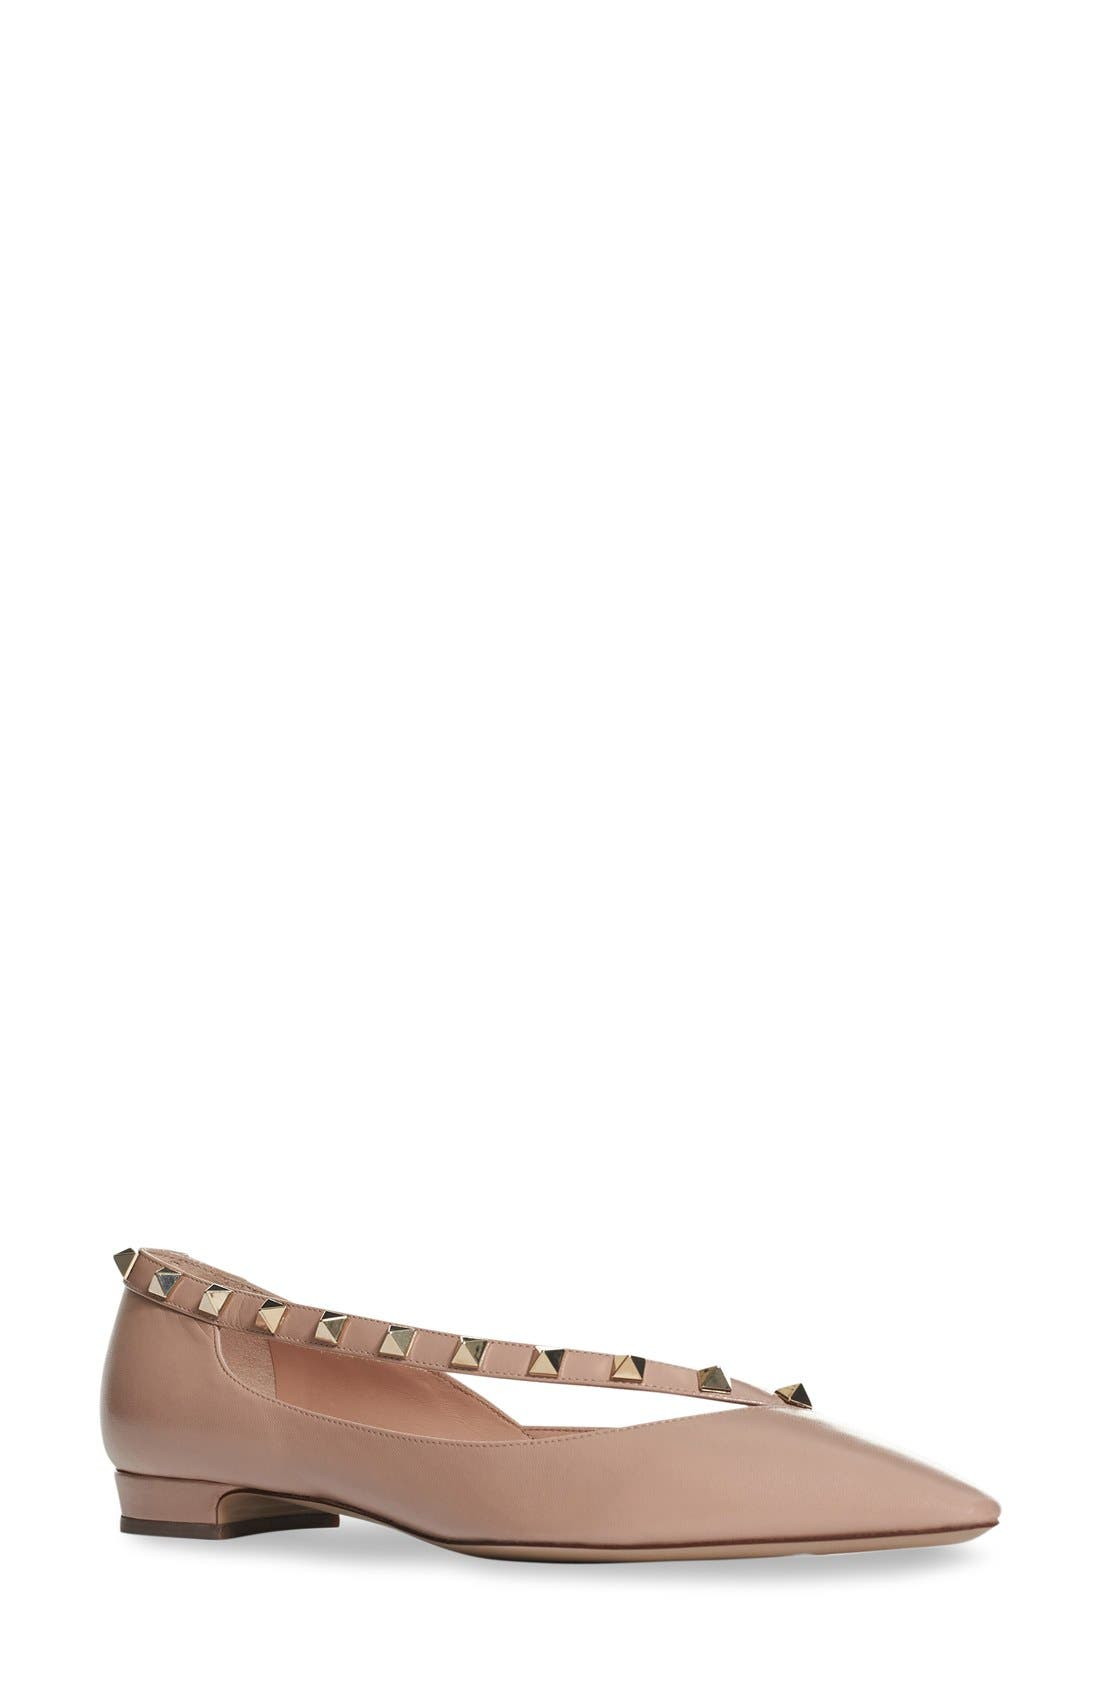 'Rockstud' Demi d'Orsay Flat,                             Main thumbnail 1, color,                             Nude Leather